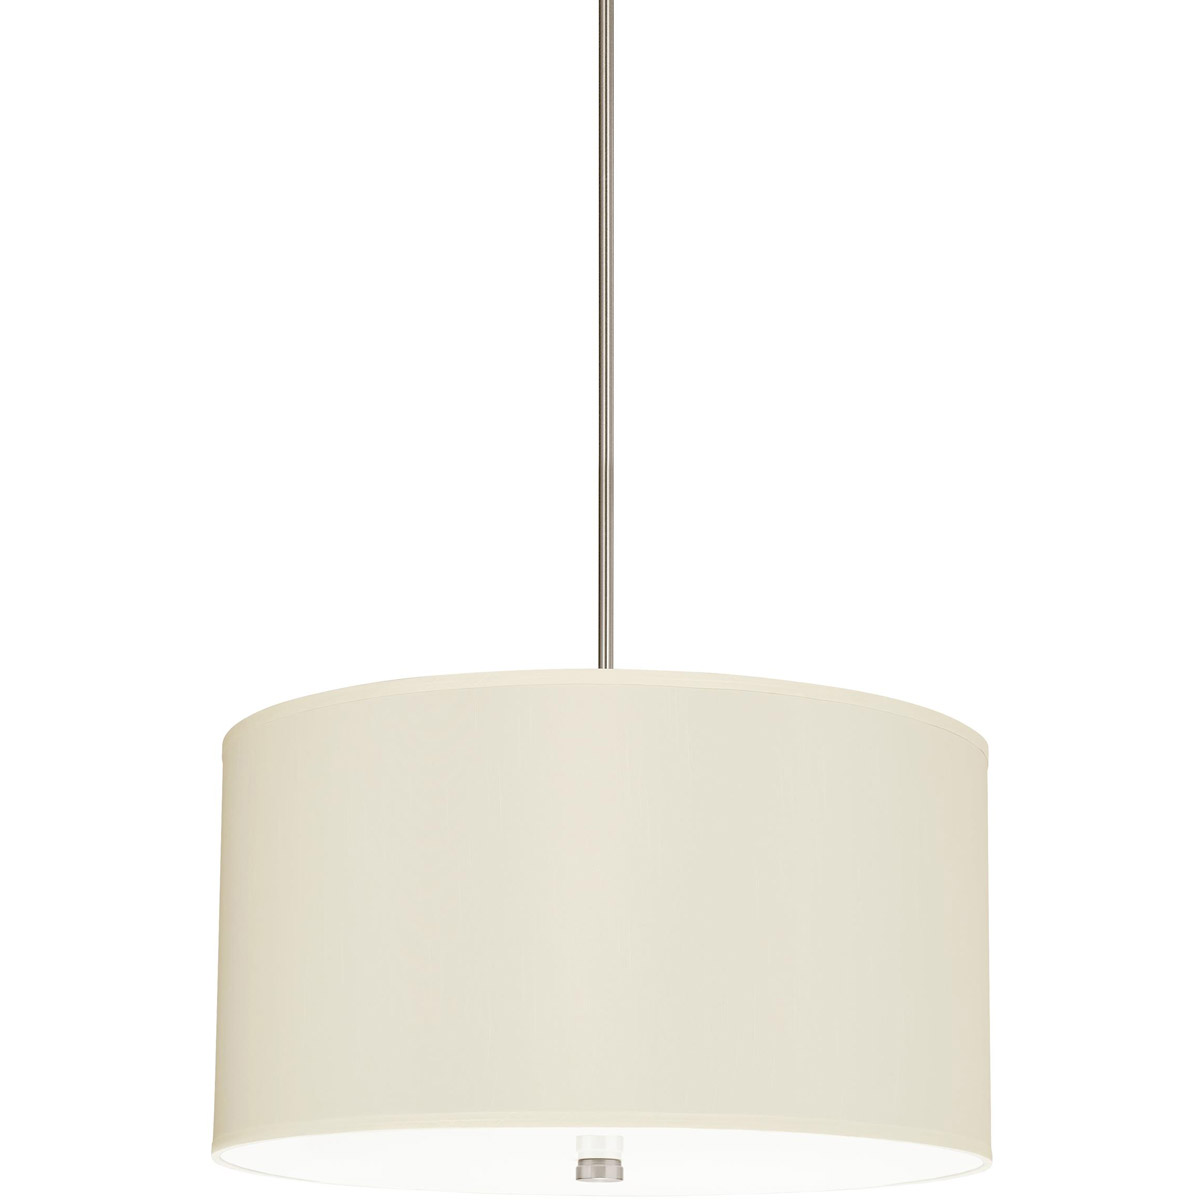 Sea Gull Dayna Shade Pendants 4 Light Pendant in Brushed Nickel 65262-962